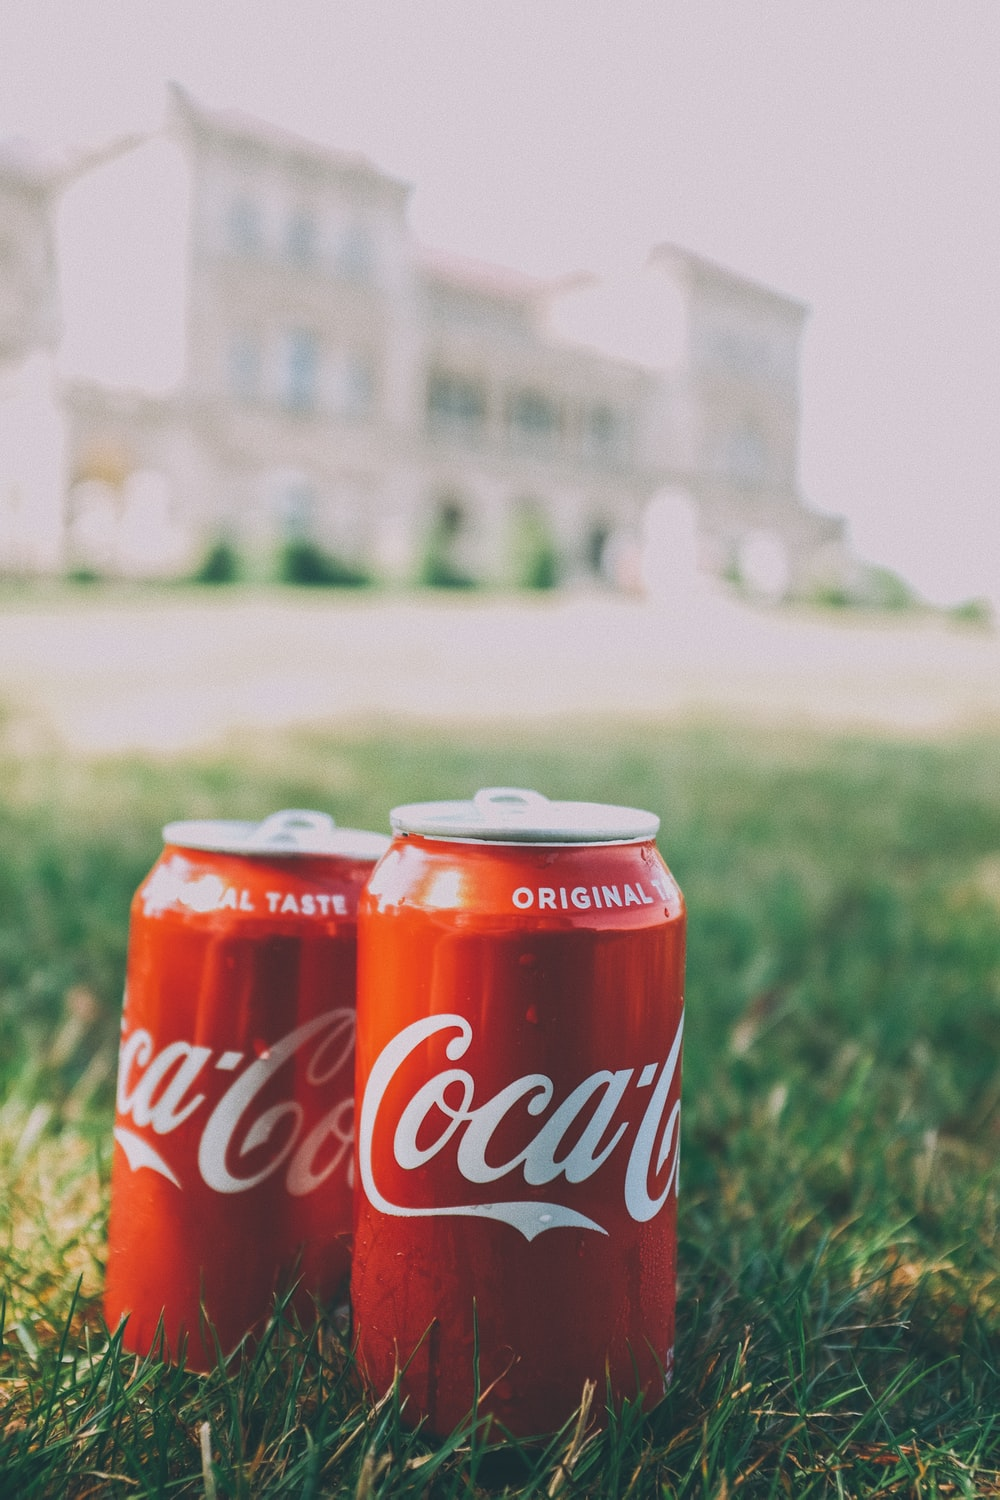 coca cola can on green grass during daytime